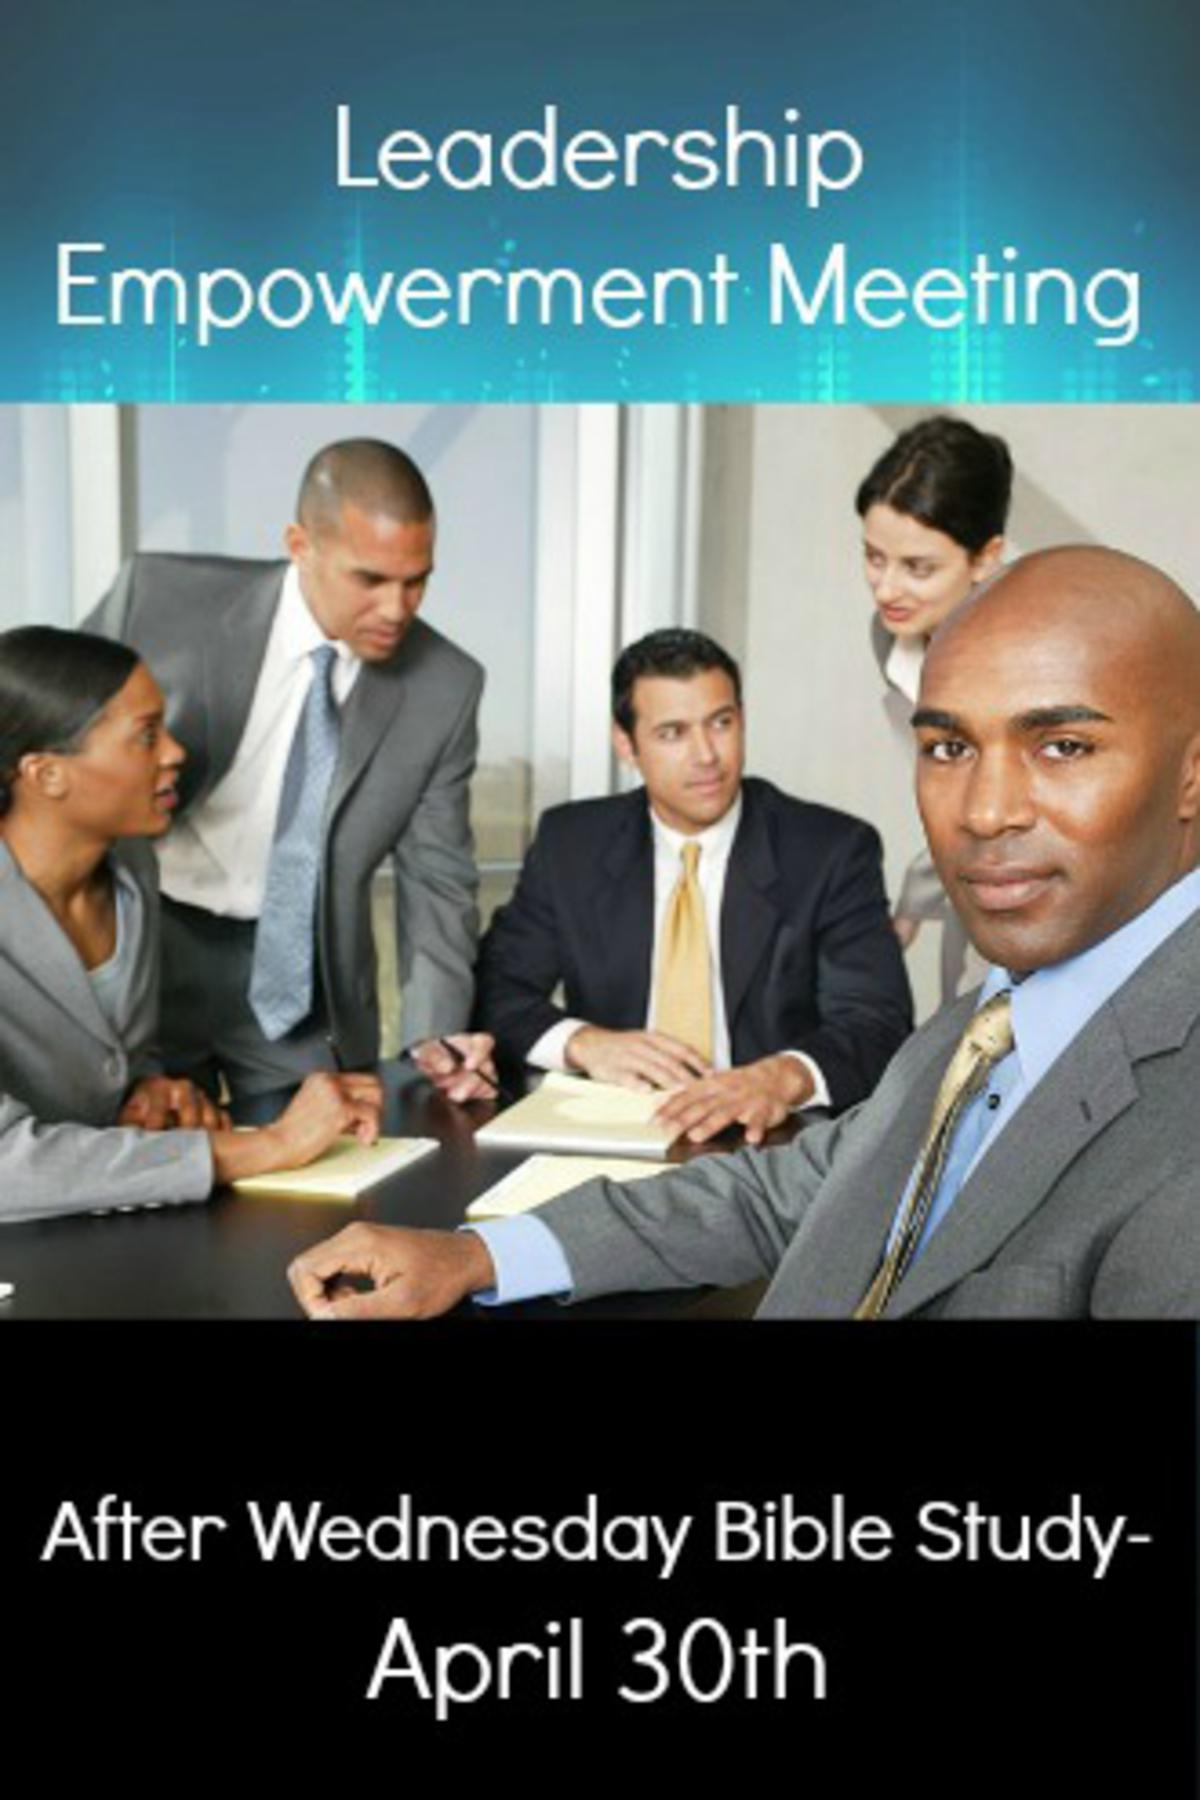 Leadership Empowerment Meeting will be after Bible Study!